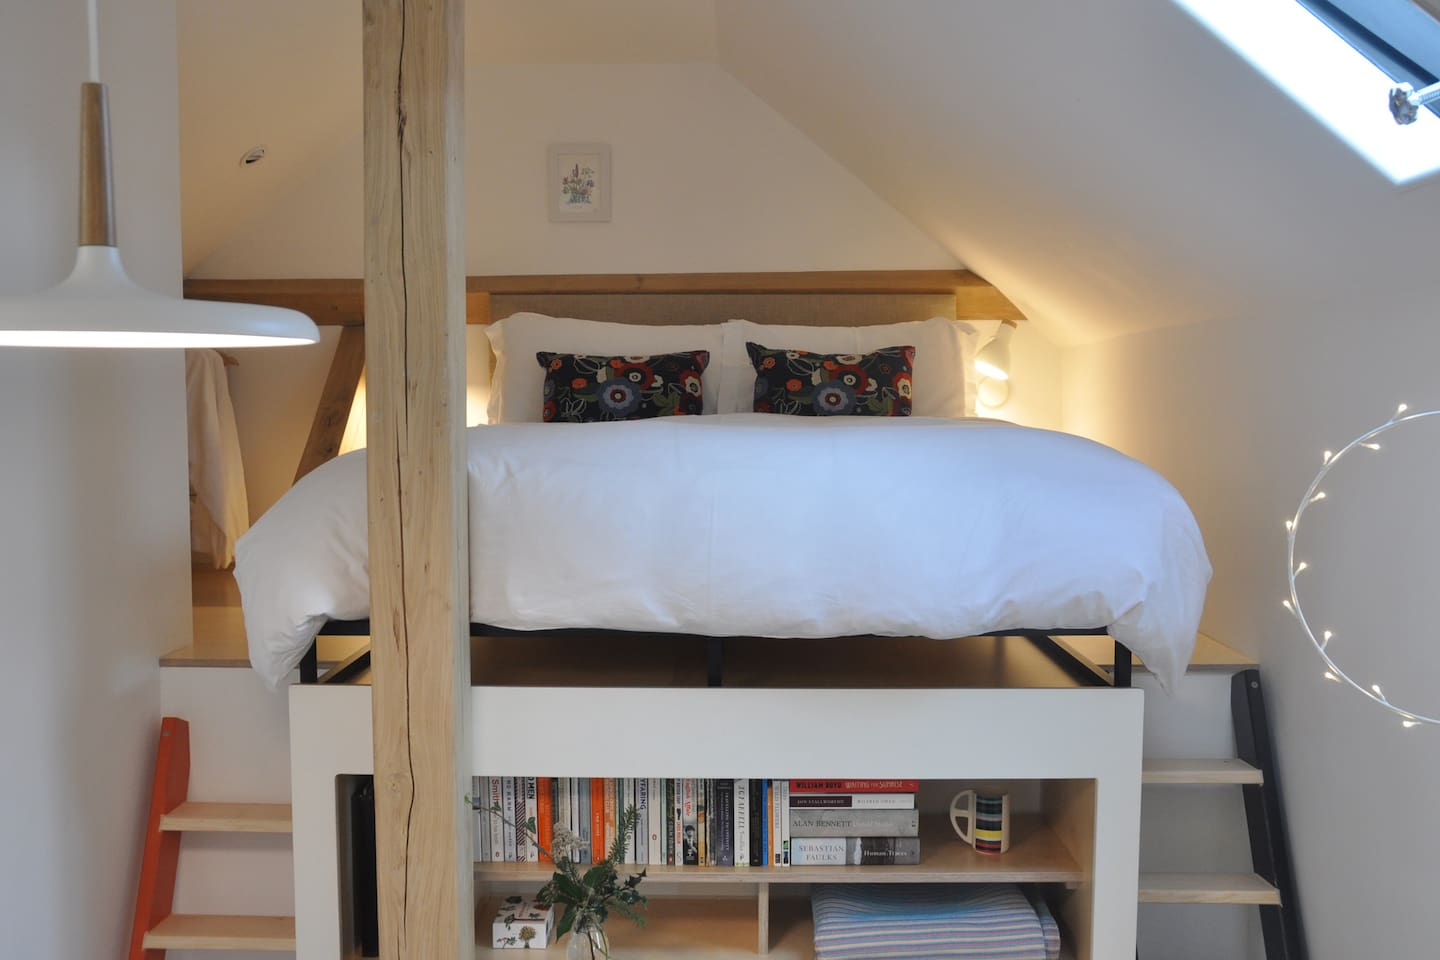 The king sized bed on mezzanine platform with ladder access